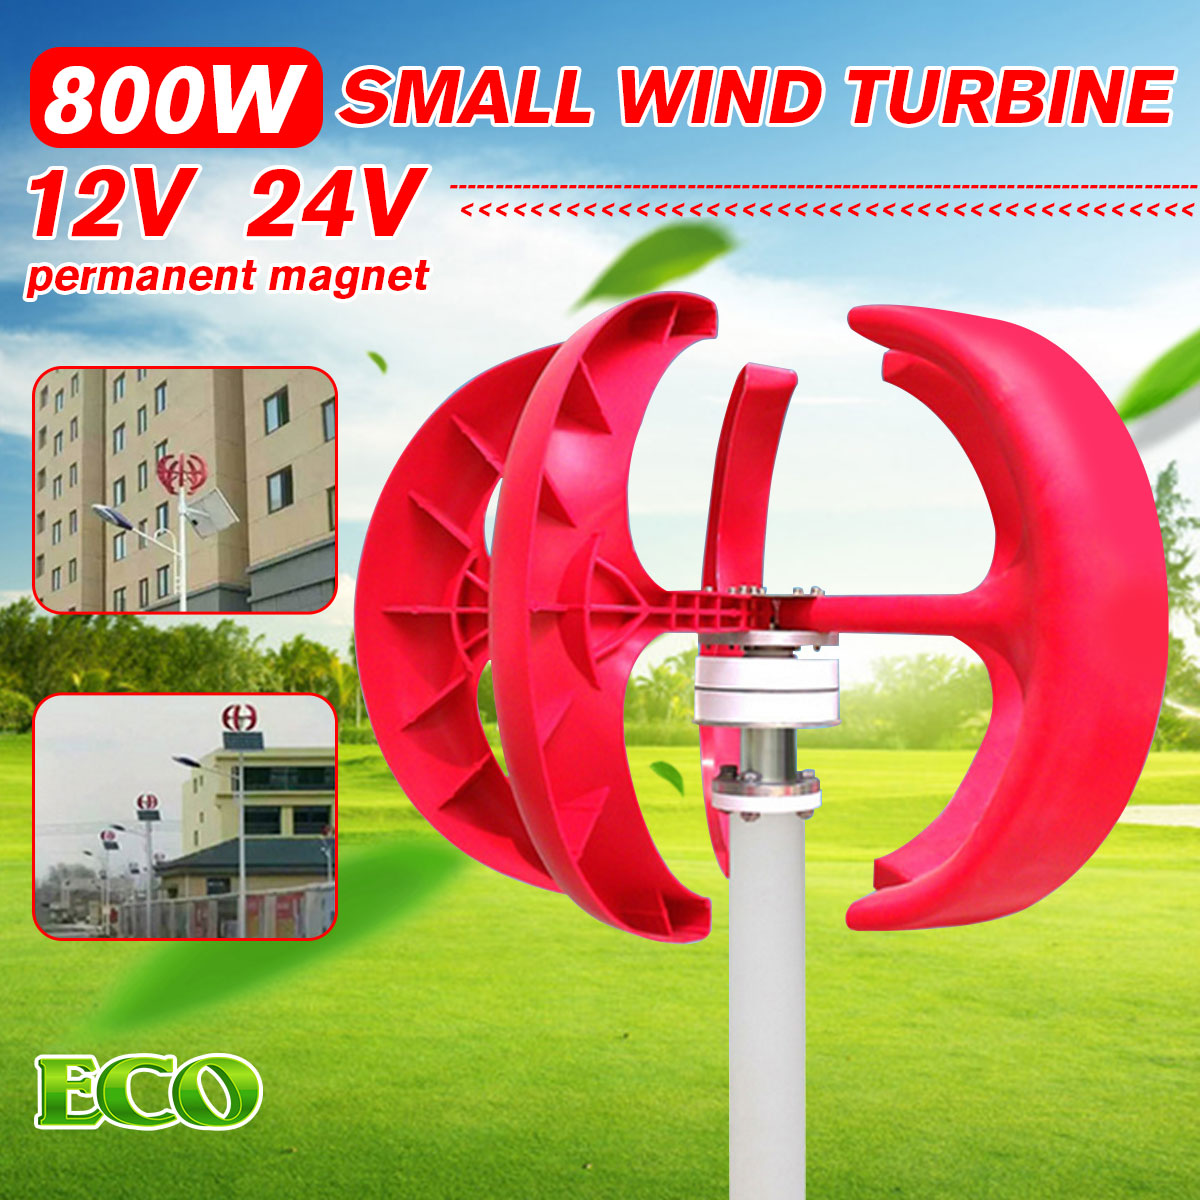 Max 800W AC 12V 24V Wind Turbine Generator Lantern 5 Blades Motor Kit Vertical Axis For Home Hybrid Streetlight UseMax 800W AC 12V 24V Wind Turbine Generator Lantern 5 Blades Motor Kit Vertical Axis For Home Hybrid Streetlight Use